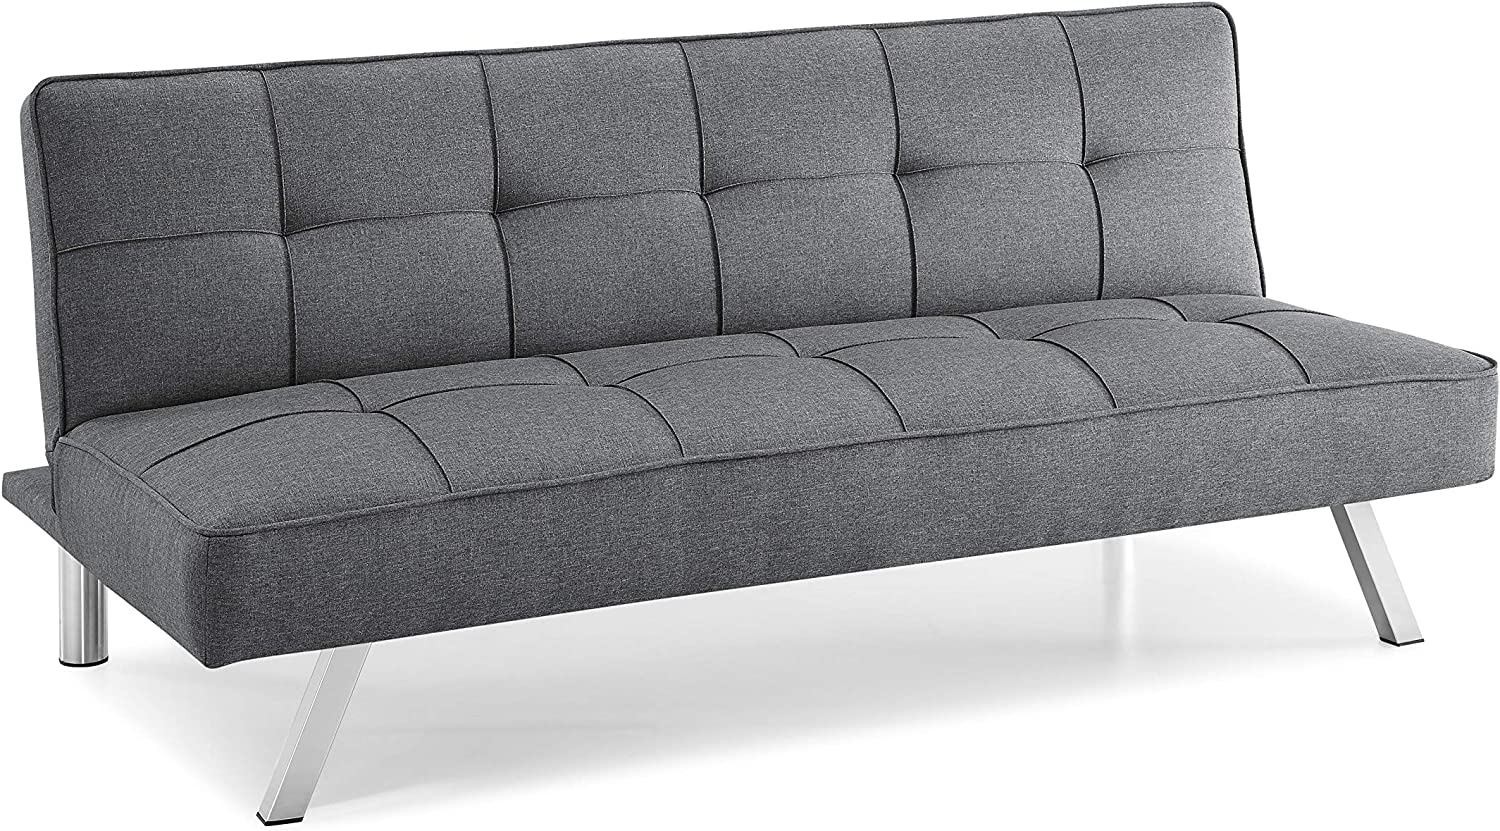 Pearington Multifunctional Convertible Sofa, Couch, Lounger, Bed-Durable Metal Legs on Frame, Grey Futon,